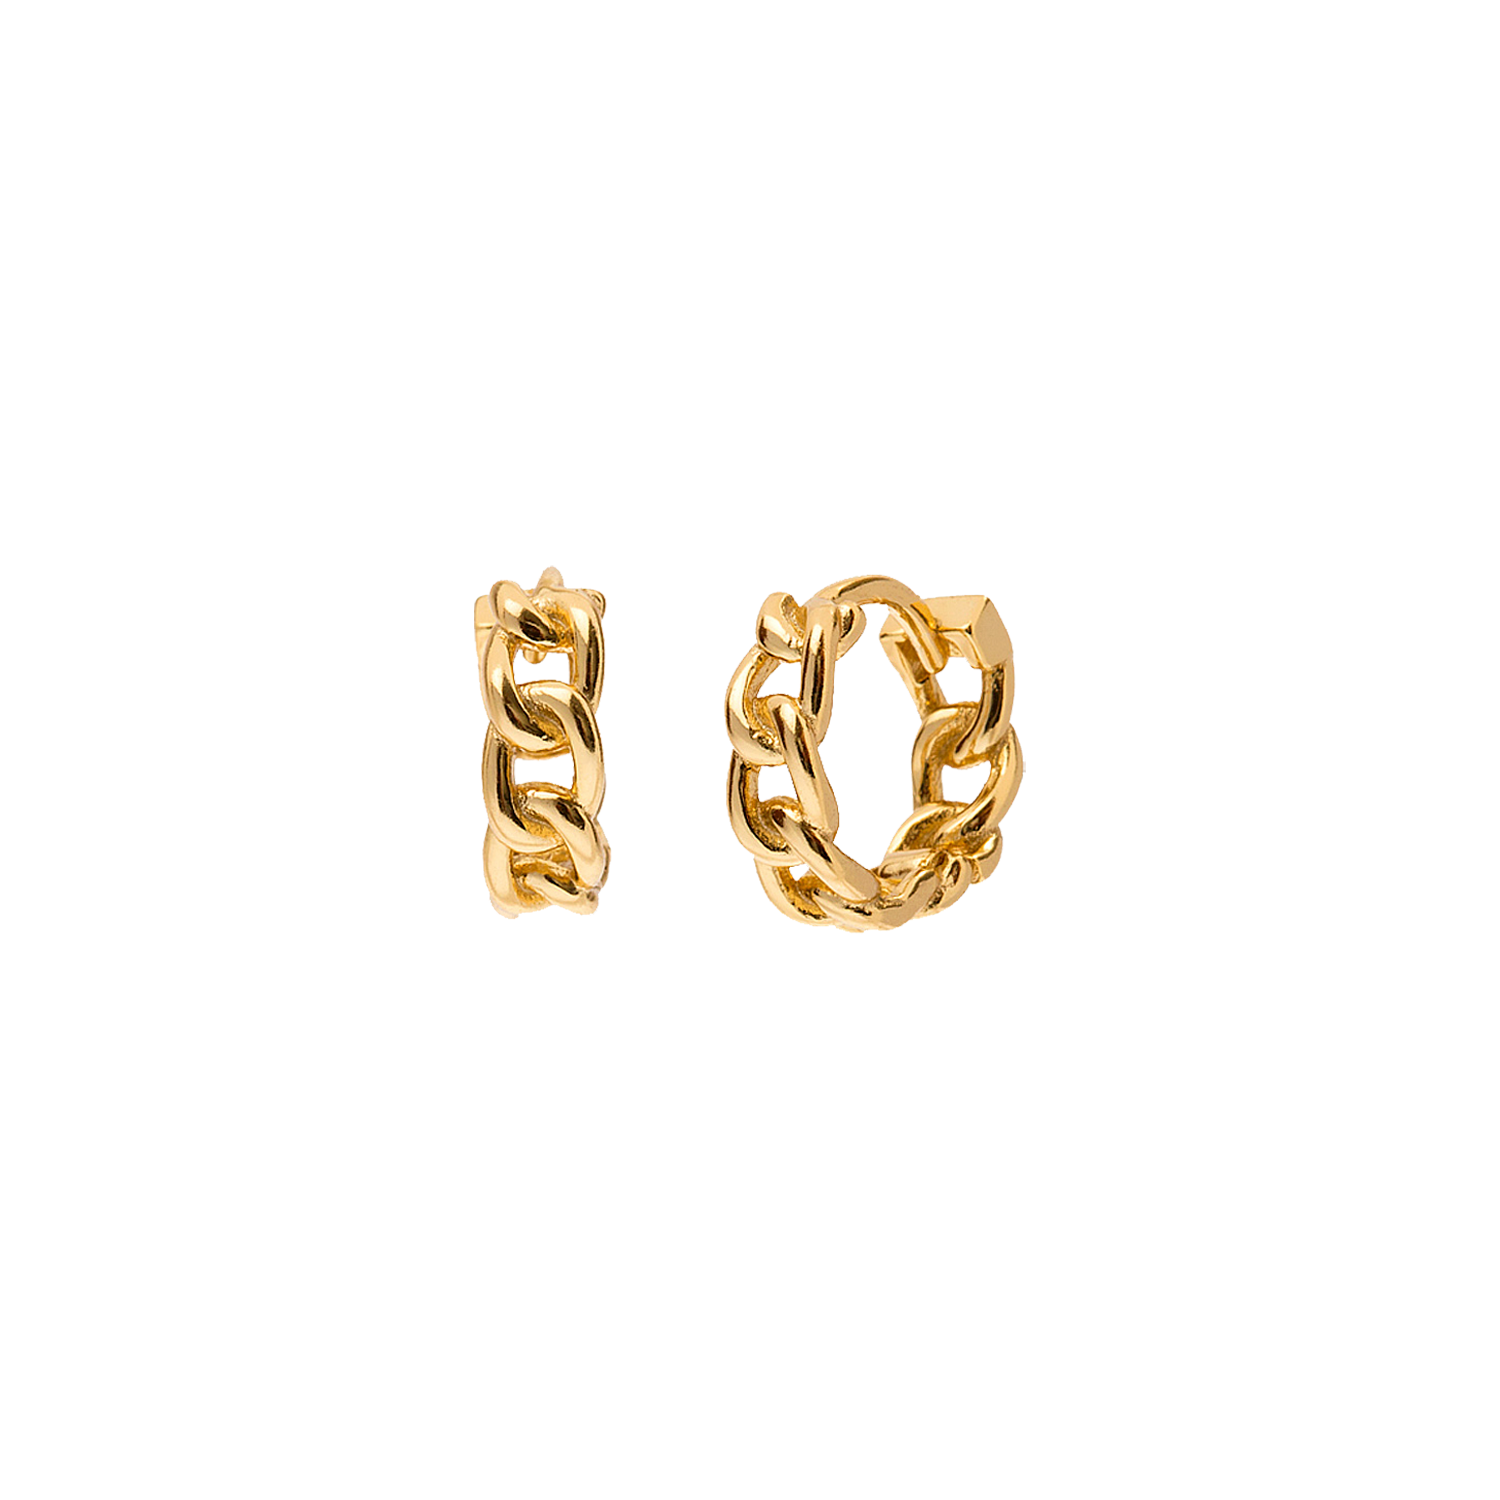 Iron Gold Earring